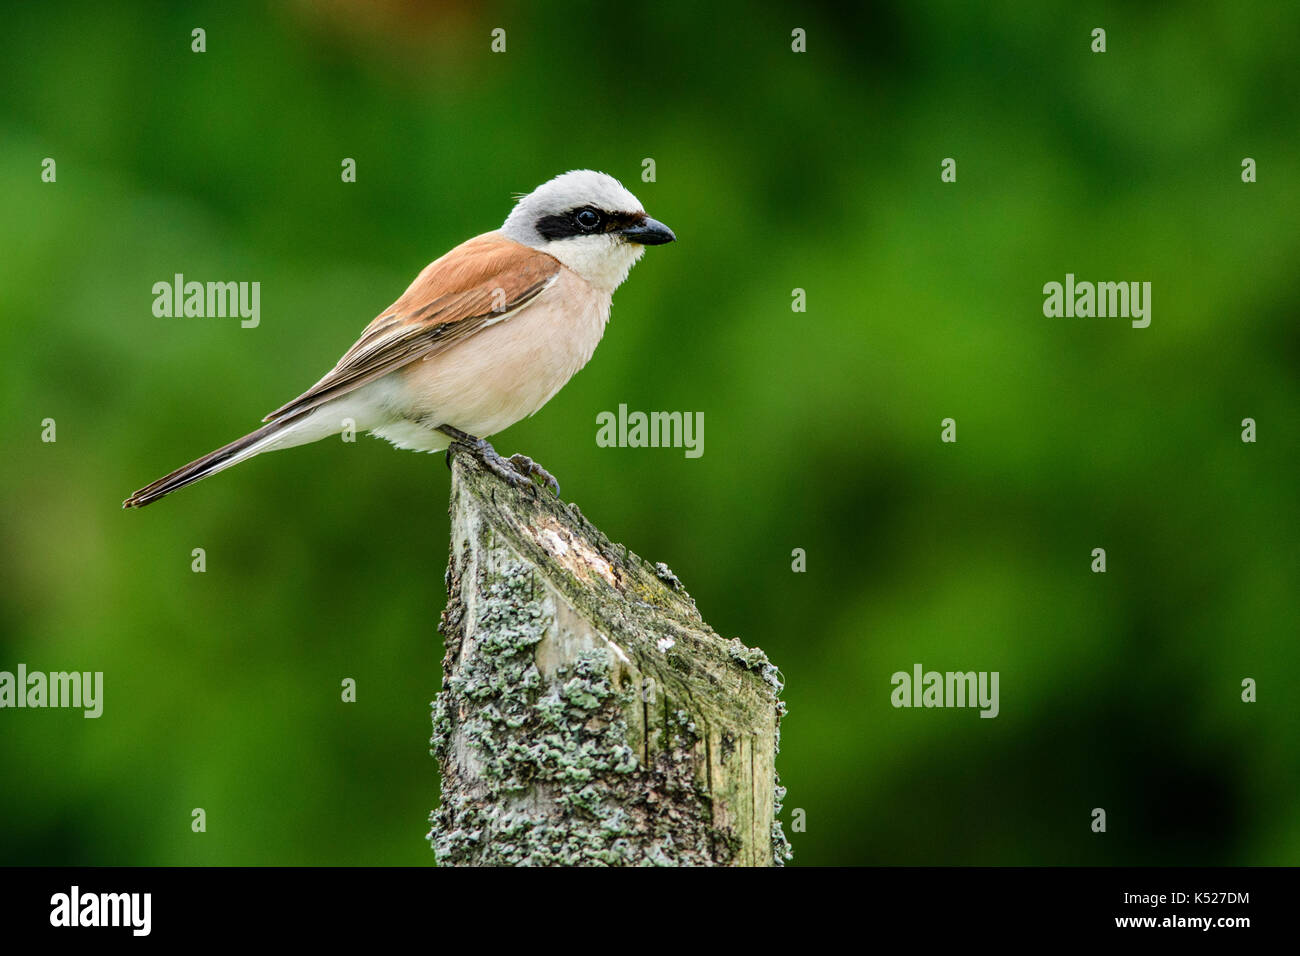 Male Red-backed Shrike (Lanius collurio) in Bialowieza National Park. July, 2017. - Stock Image